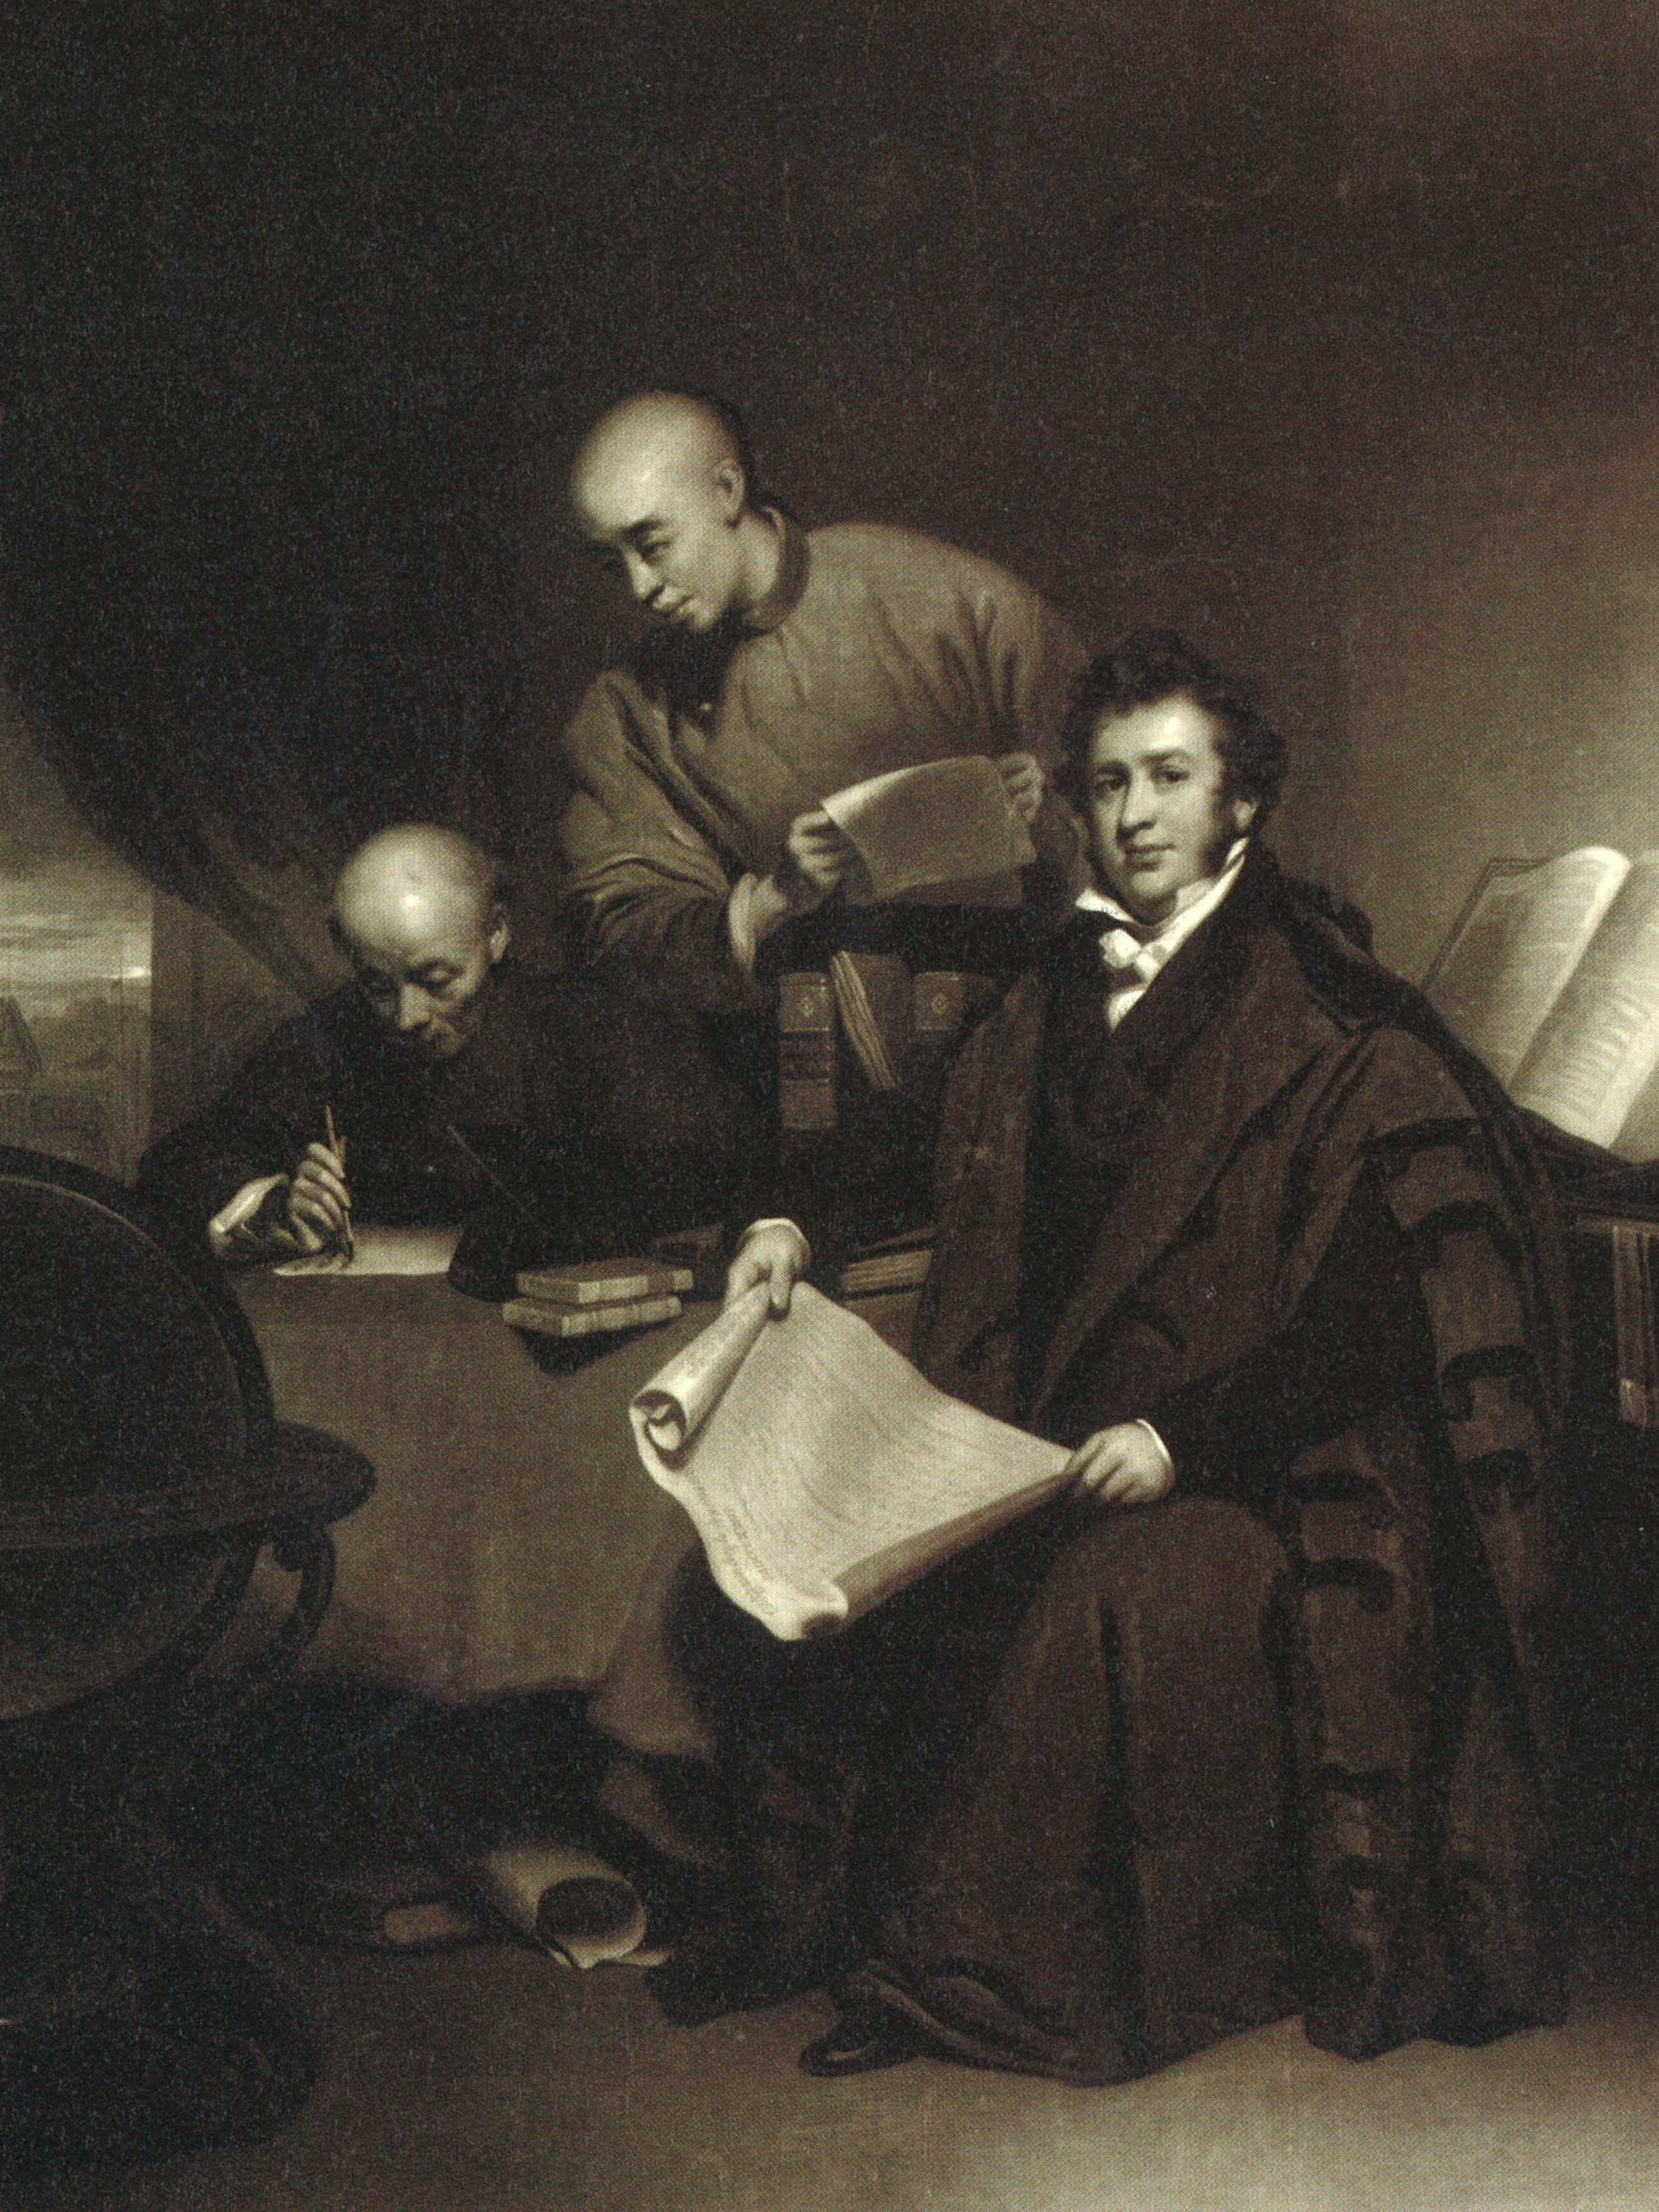 A picture of Robert Morrison translating The Bible. Dr Lam found this picture in the Victoria and Albert Museum in the United Kingdom.